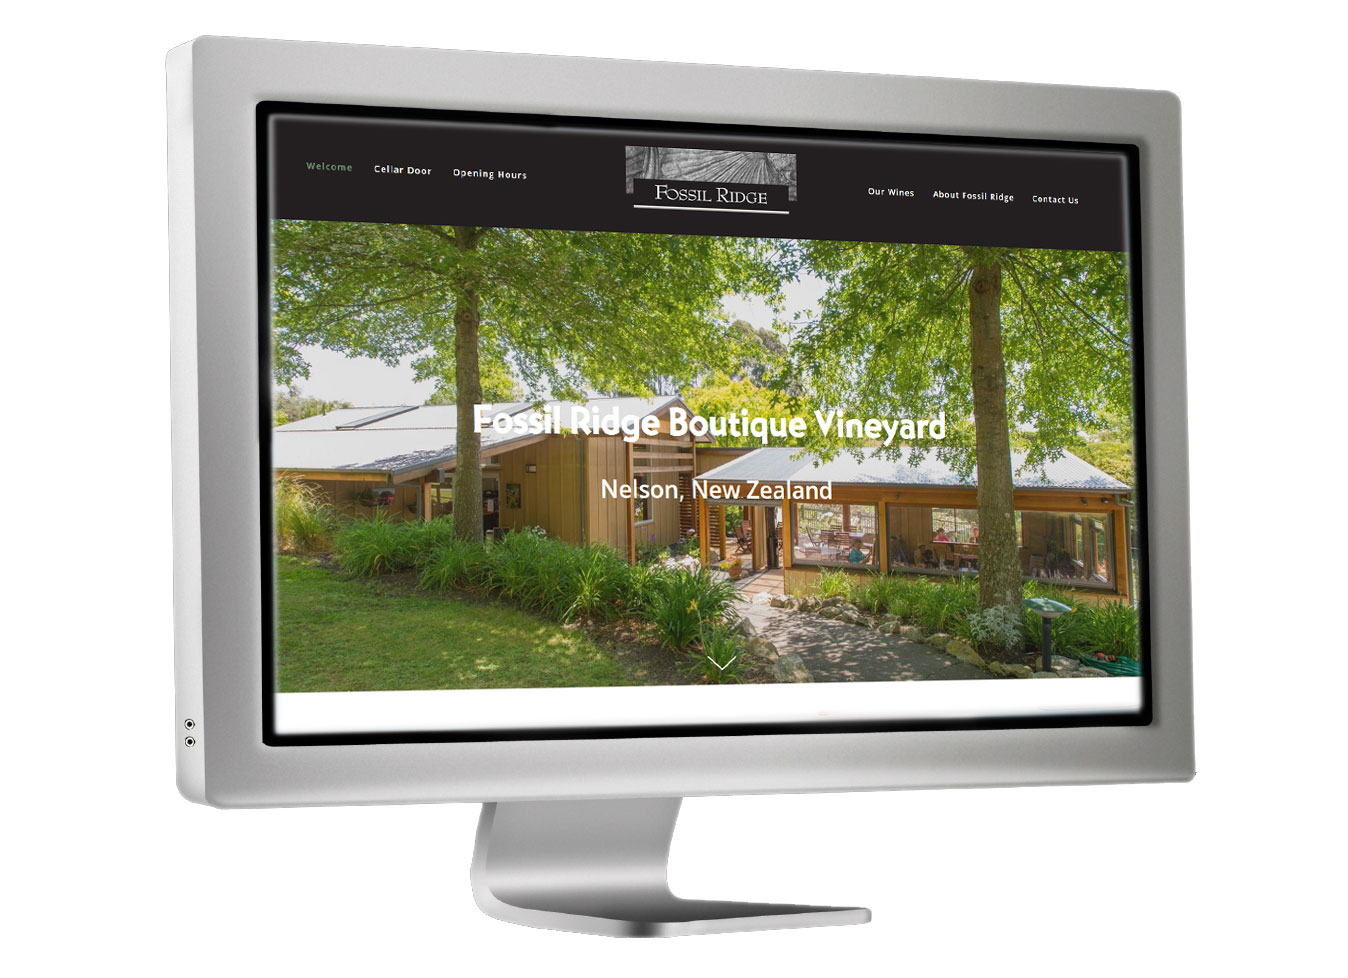 Fossil Ridge Winery website